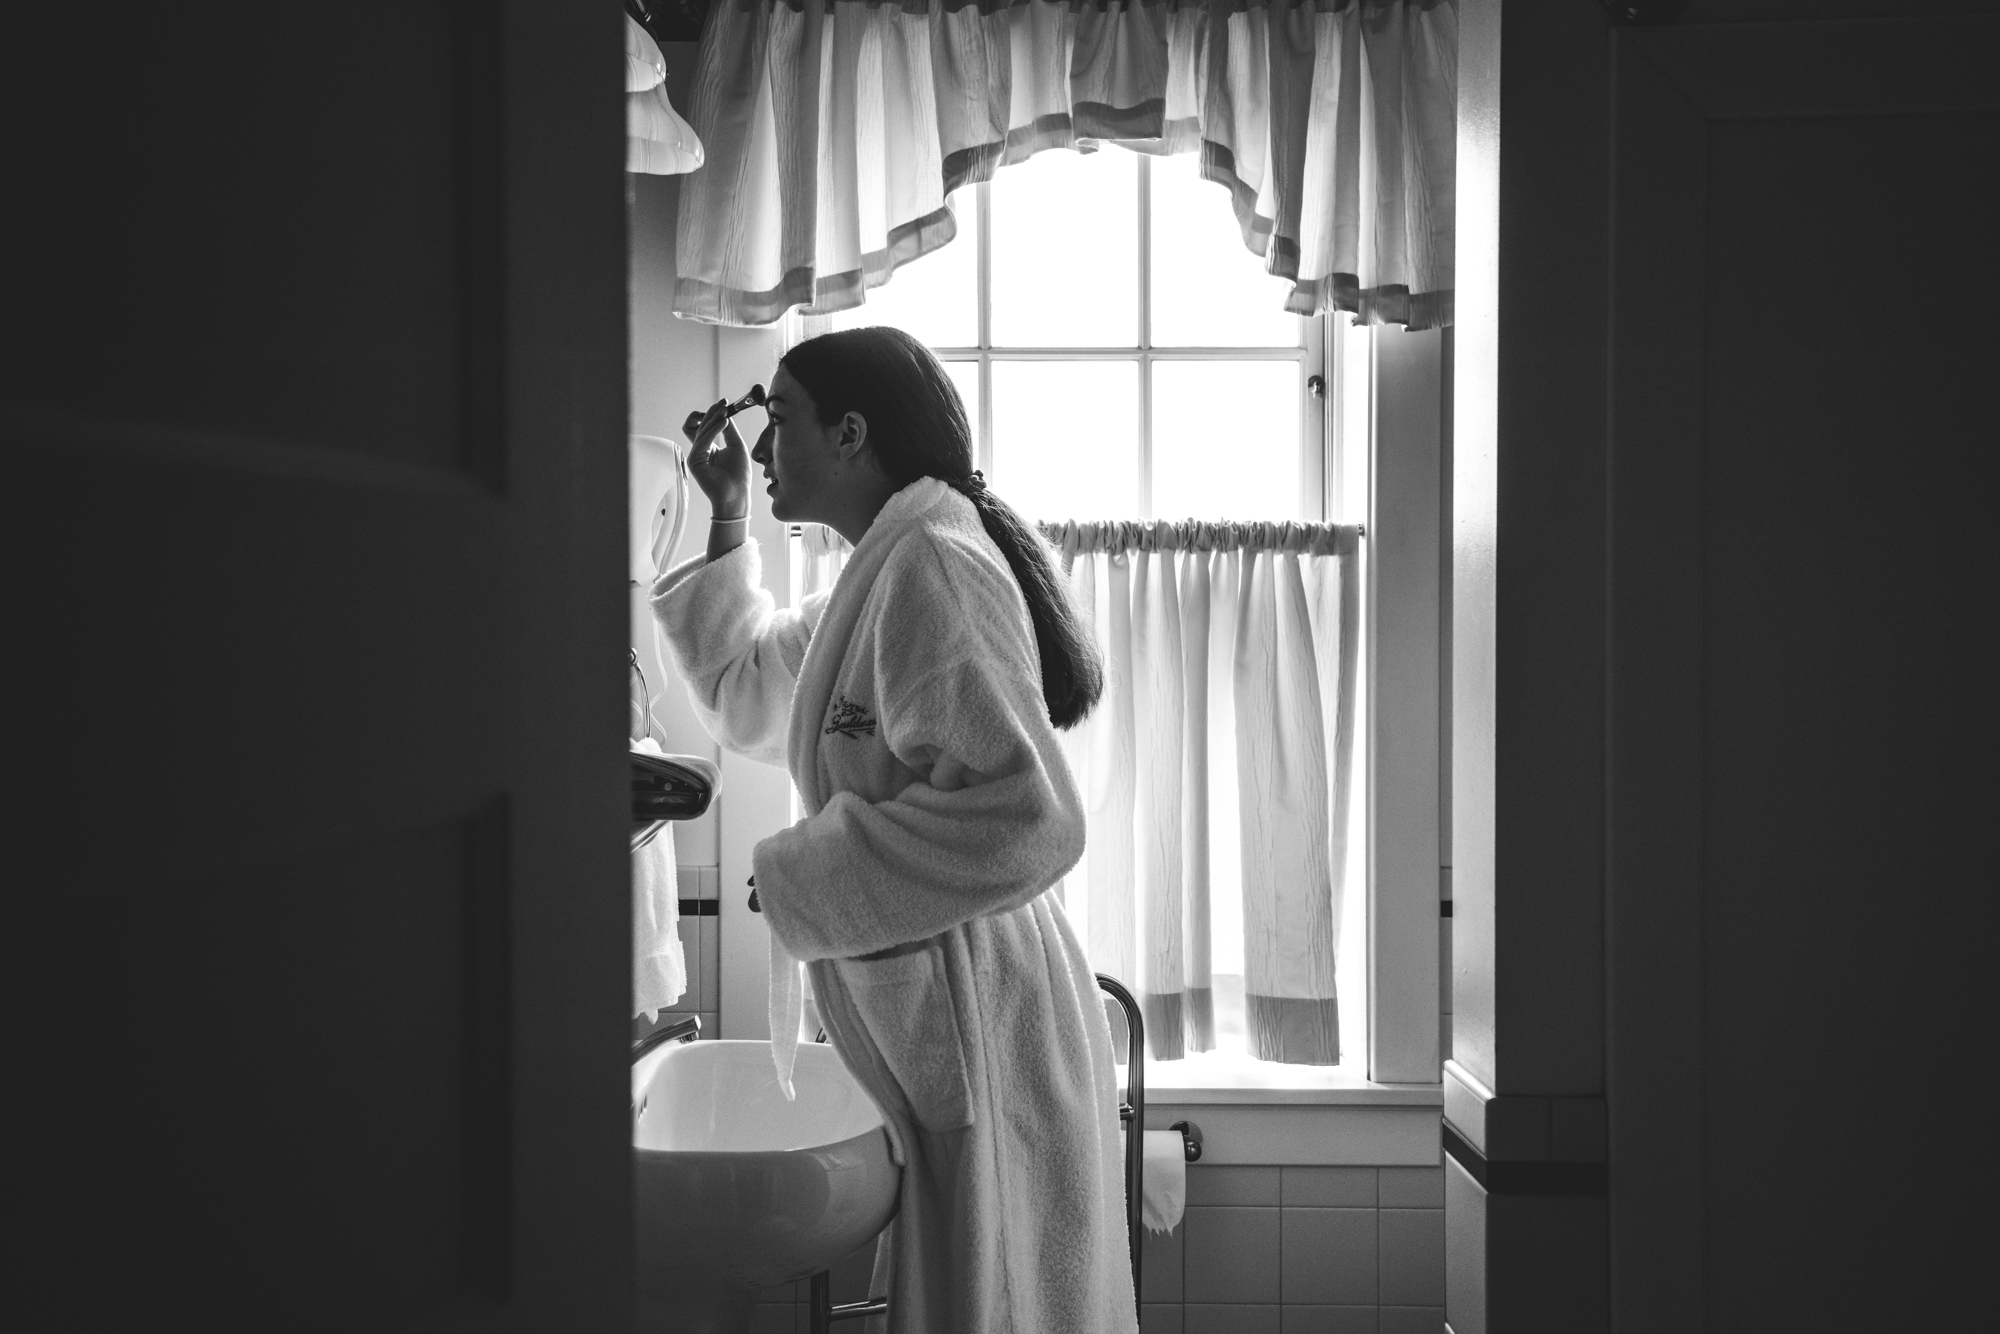 Black and white photo of a young woman wearing a robe in a beautifully lite bathroom putting makeup on in the mirror. Taken in the Hotel Boulderado in Boulder, Colorado.